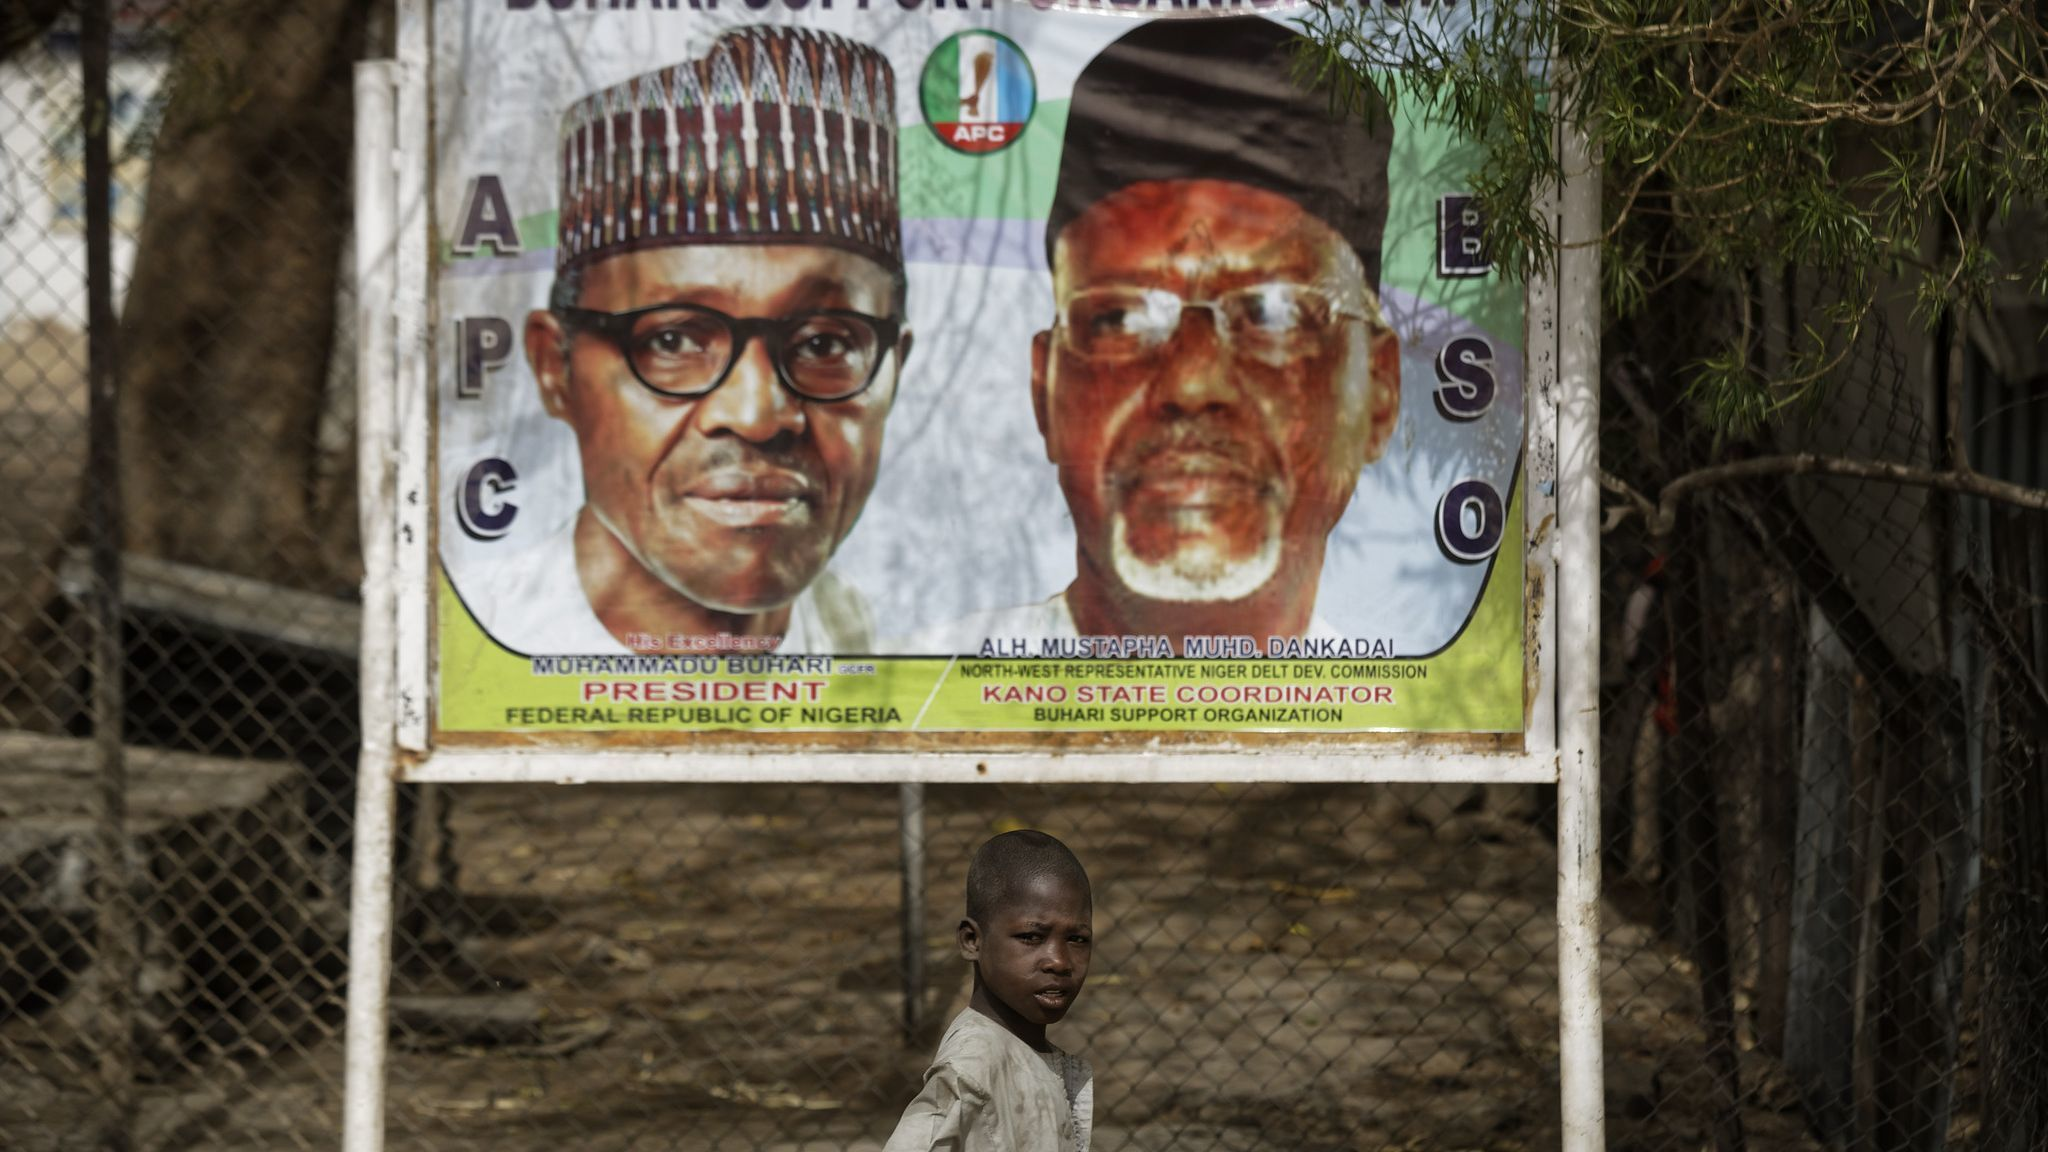 Hours before polls were to open, Nigeria delays election a week, citing 'challenges'